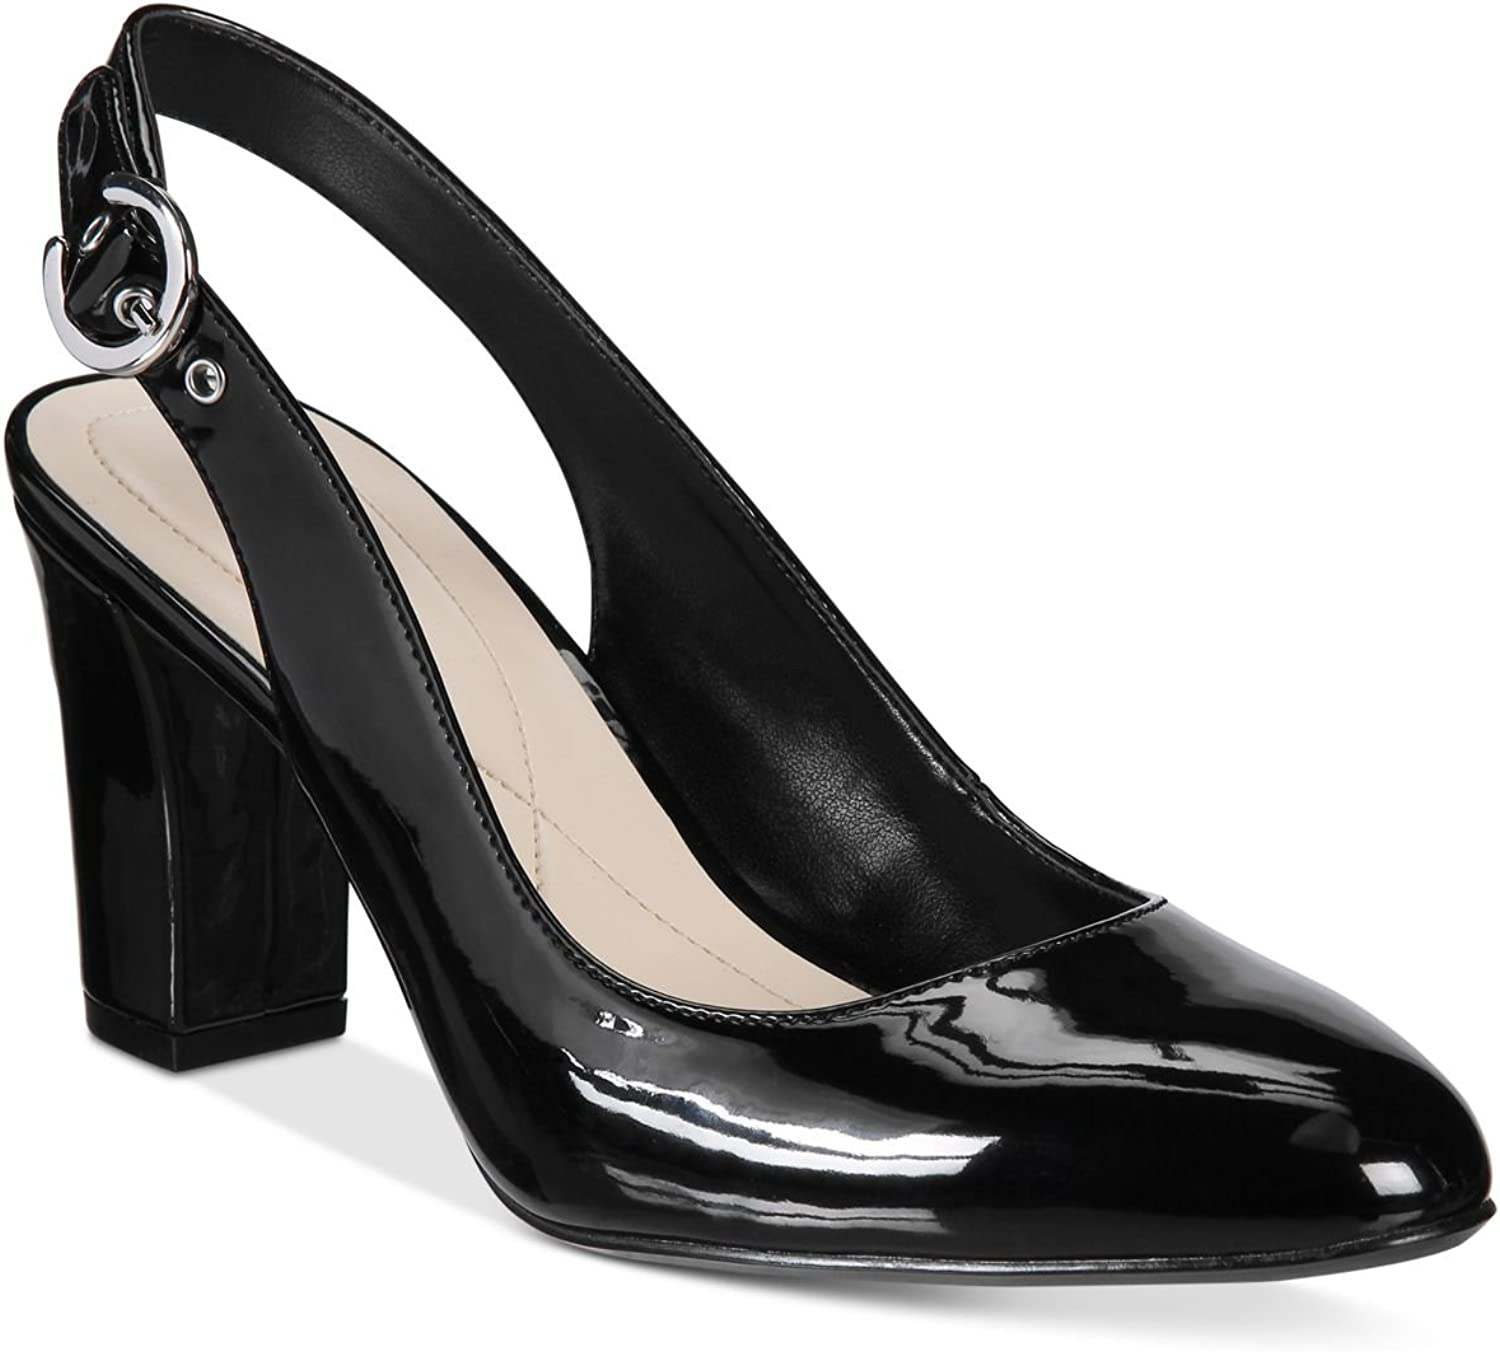 Alfani Womens Laylaa Slingback Pumps Black 7.5M